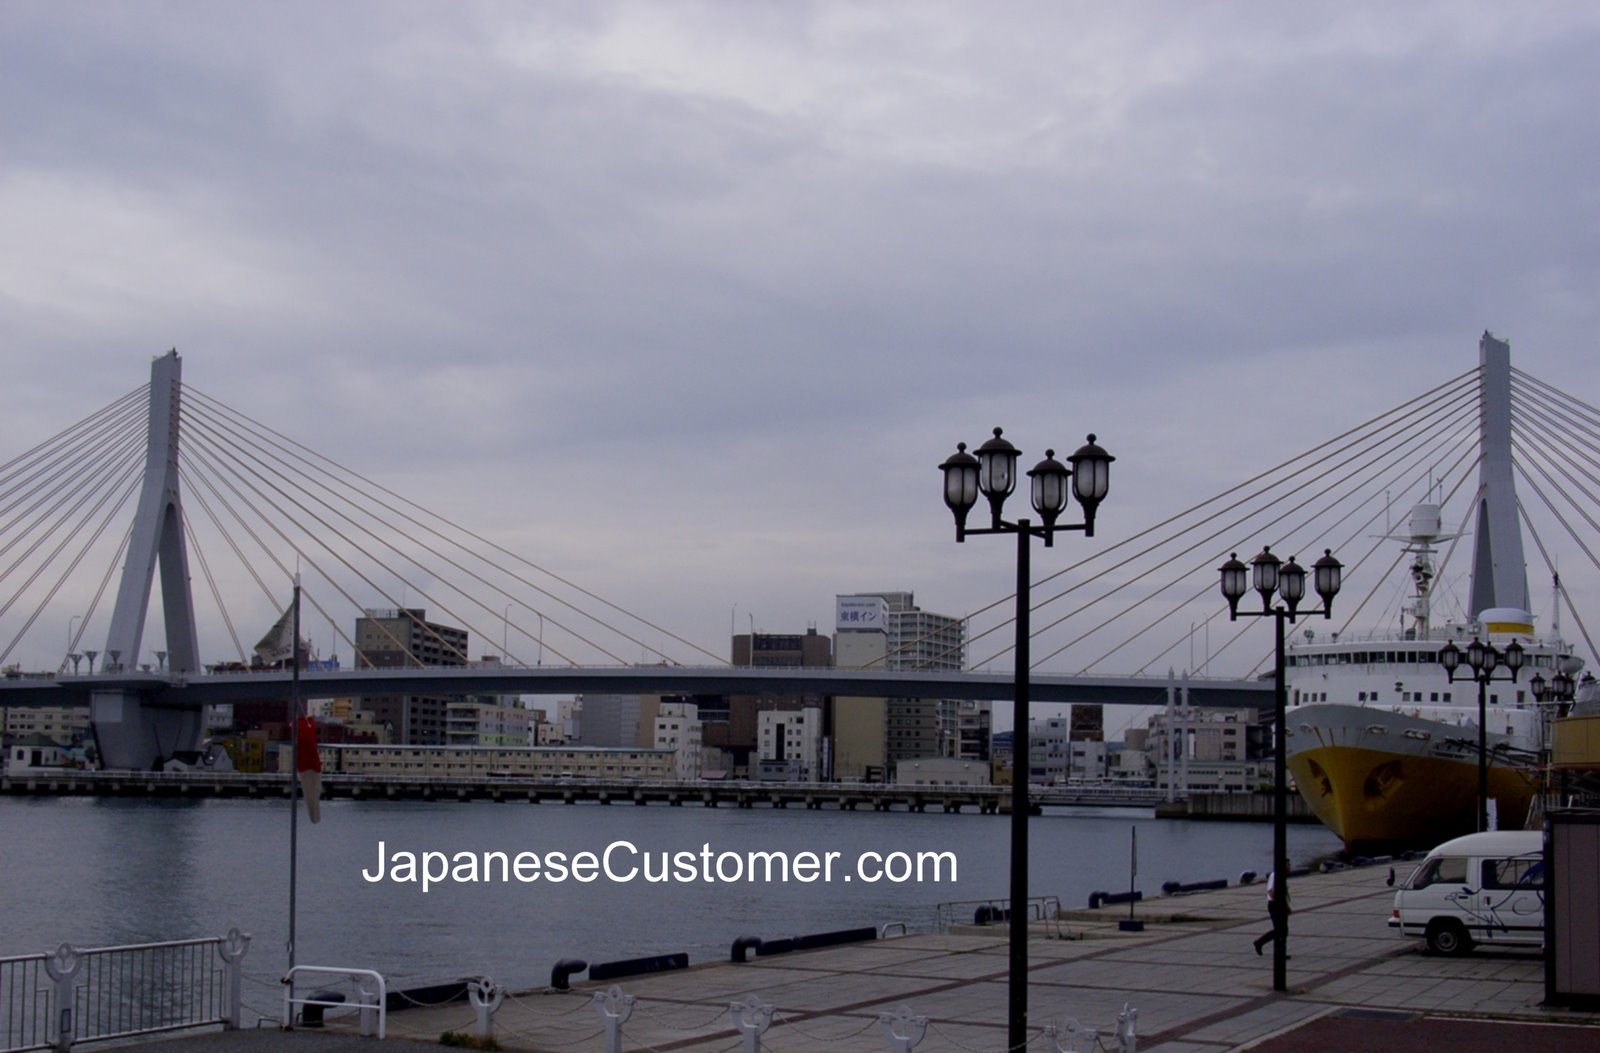 Skyline of Japanese city Copyright Peter Hanami 2007